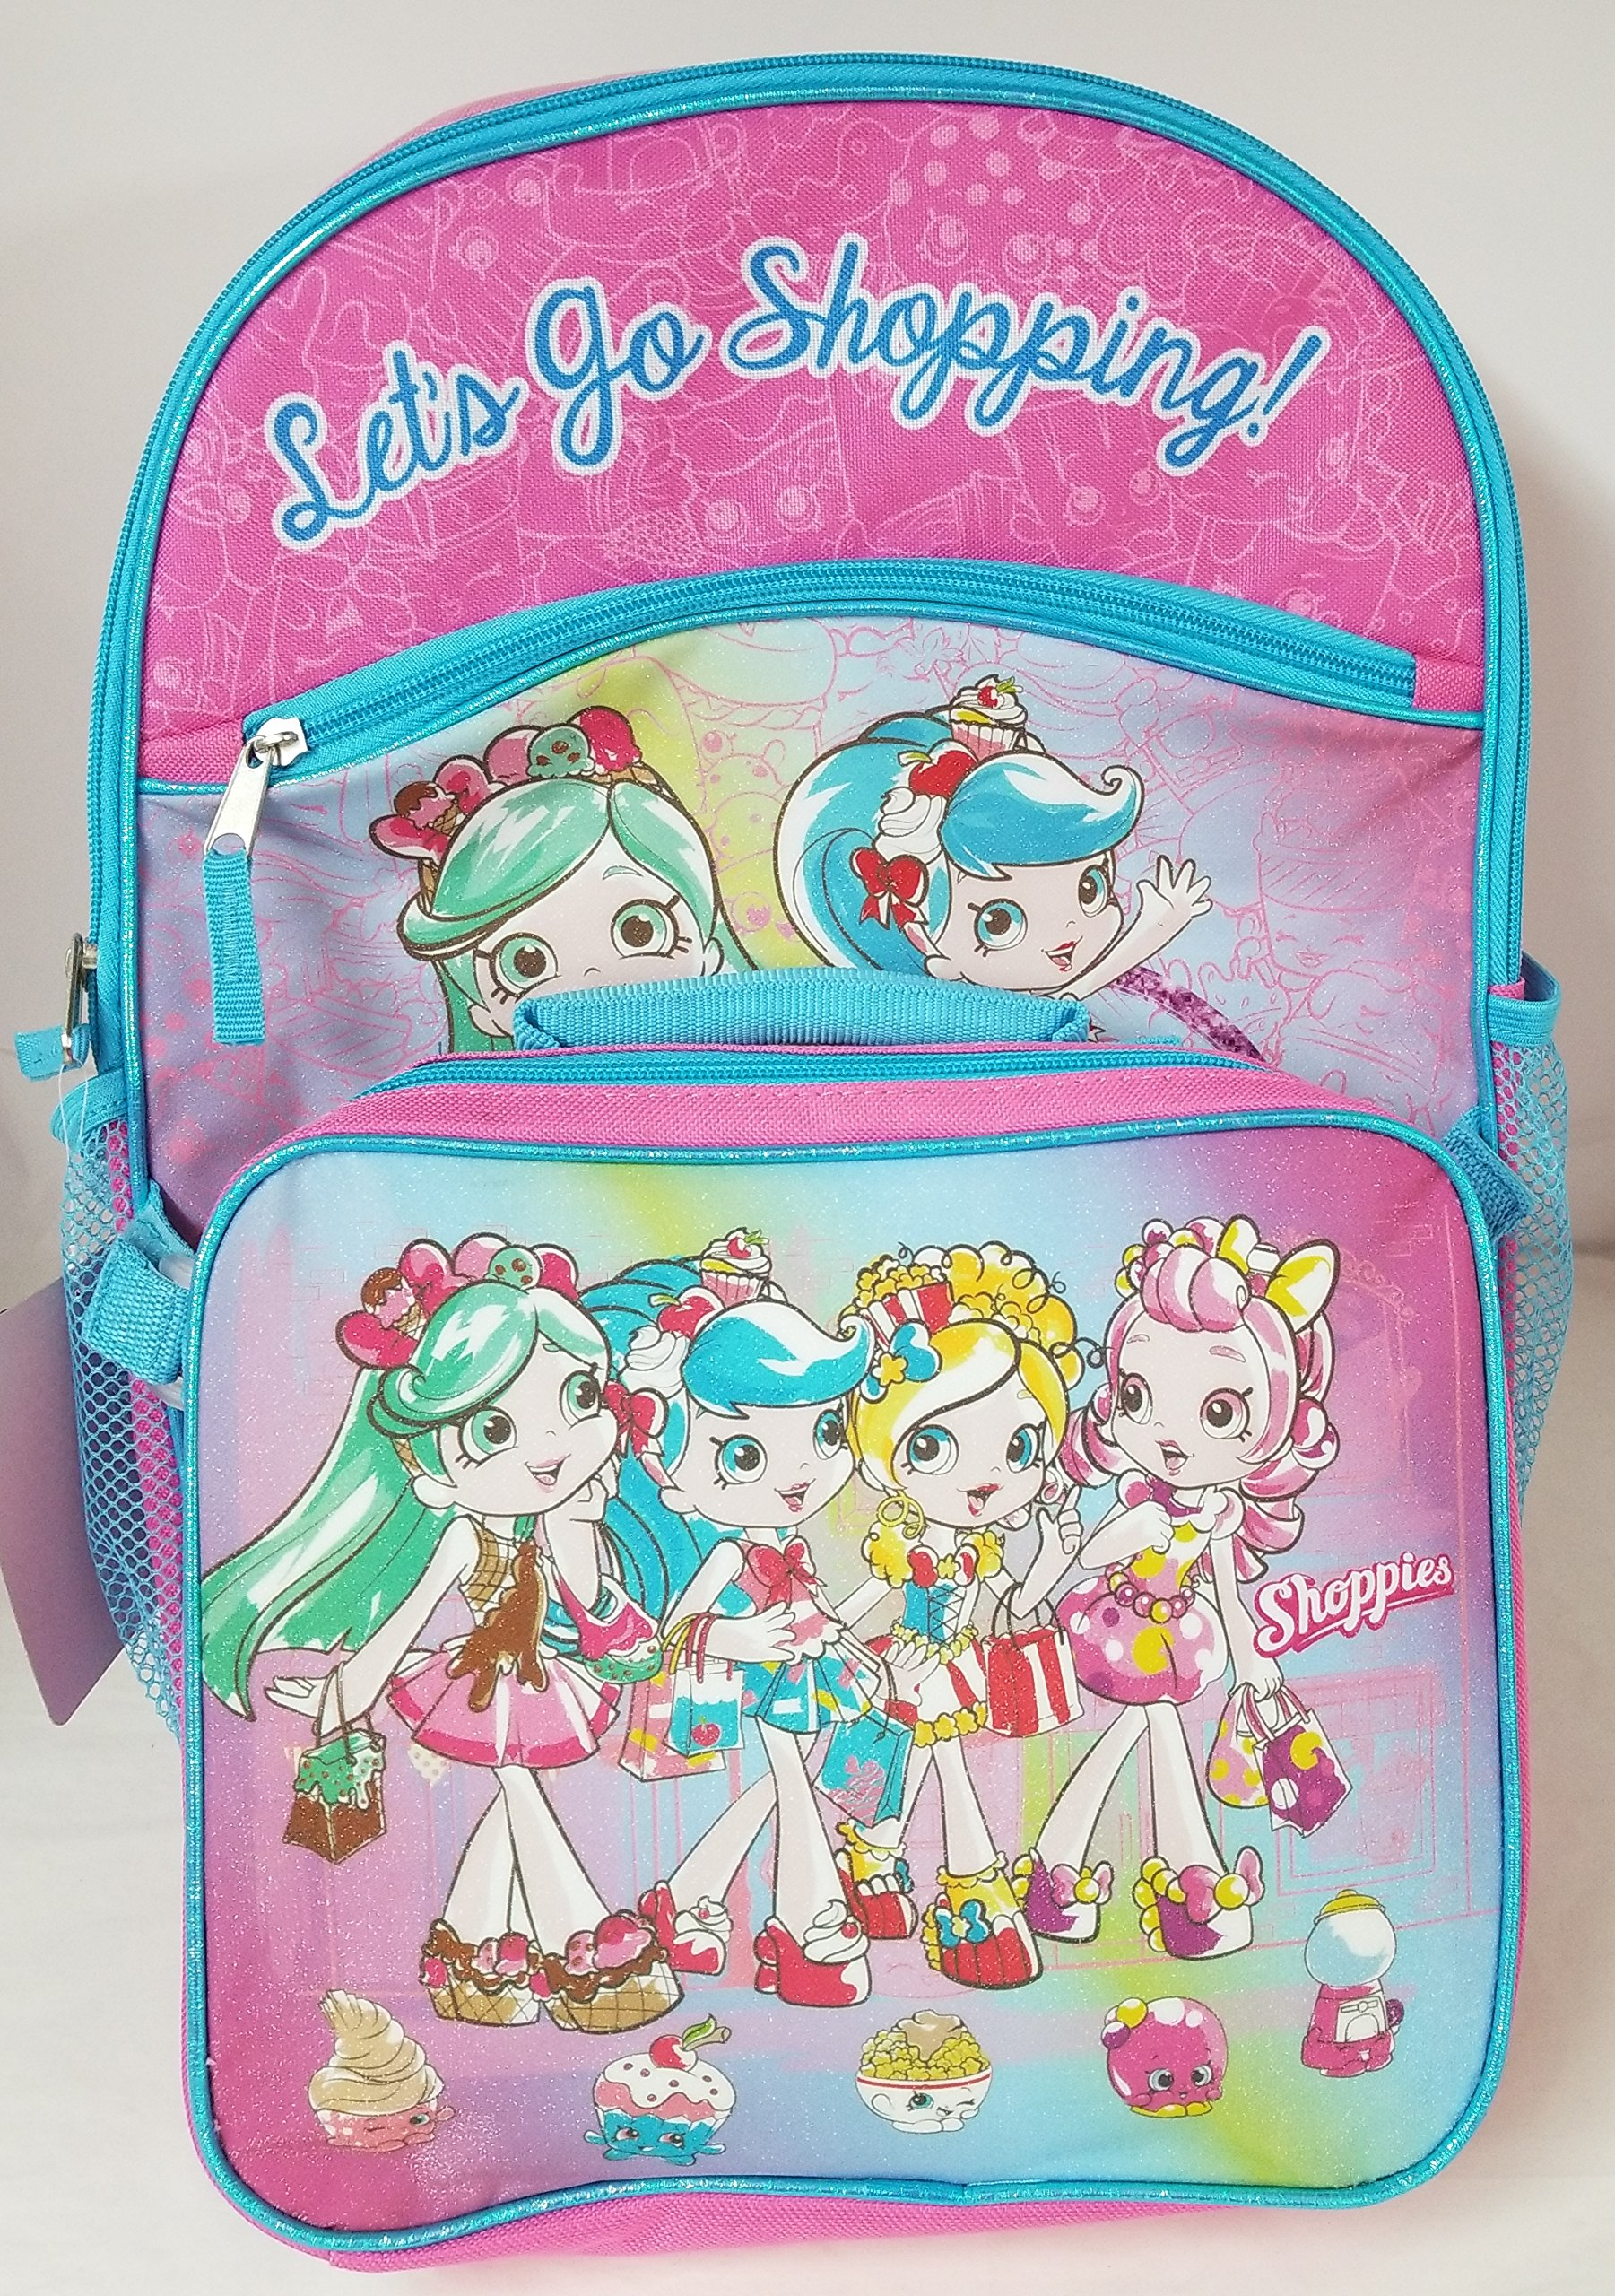 Shopkins Shoppies Backpack and Lunchbox Set ''Lets go Shopping'' by Shopkins